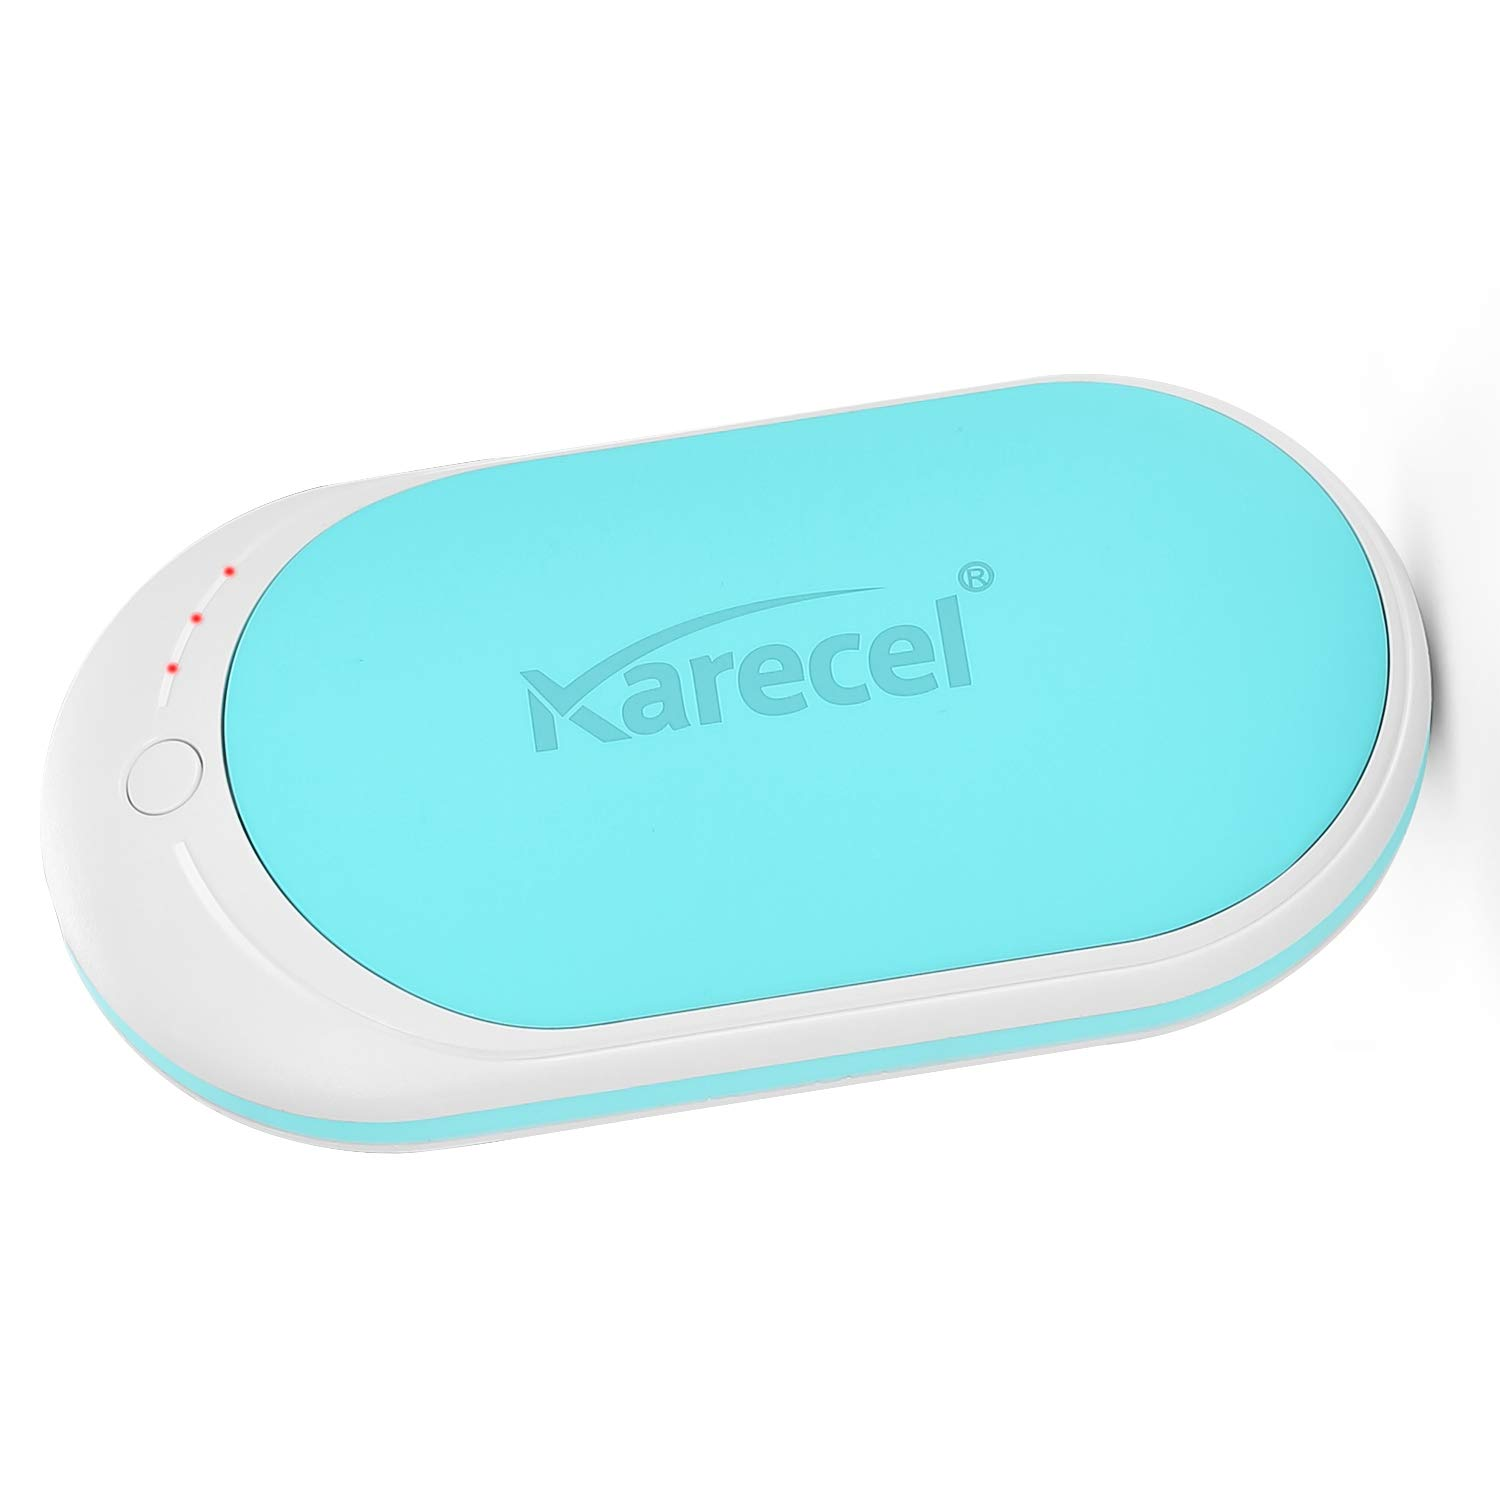 Karecel Hand Warmers Rechargeable, Electric Hand Warmer Reusable 5200mAh Powerbank Portable USB Heater Battery Hot Pocket Warmer Heat Handwarmers, Cool Gifts for Men and Women in Cold Winter by KARECEL